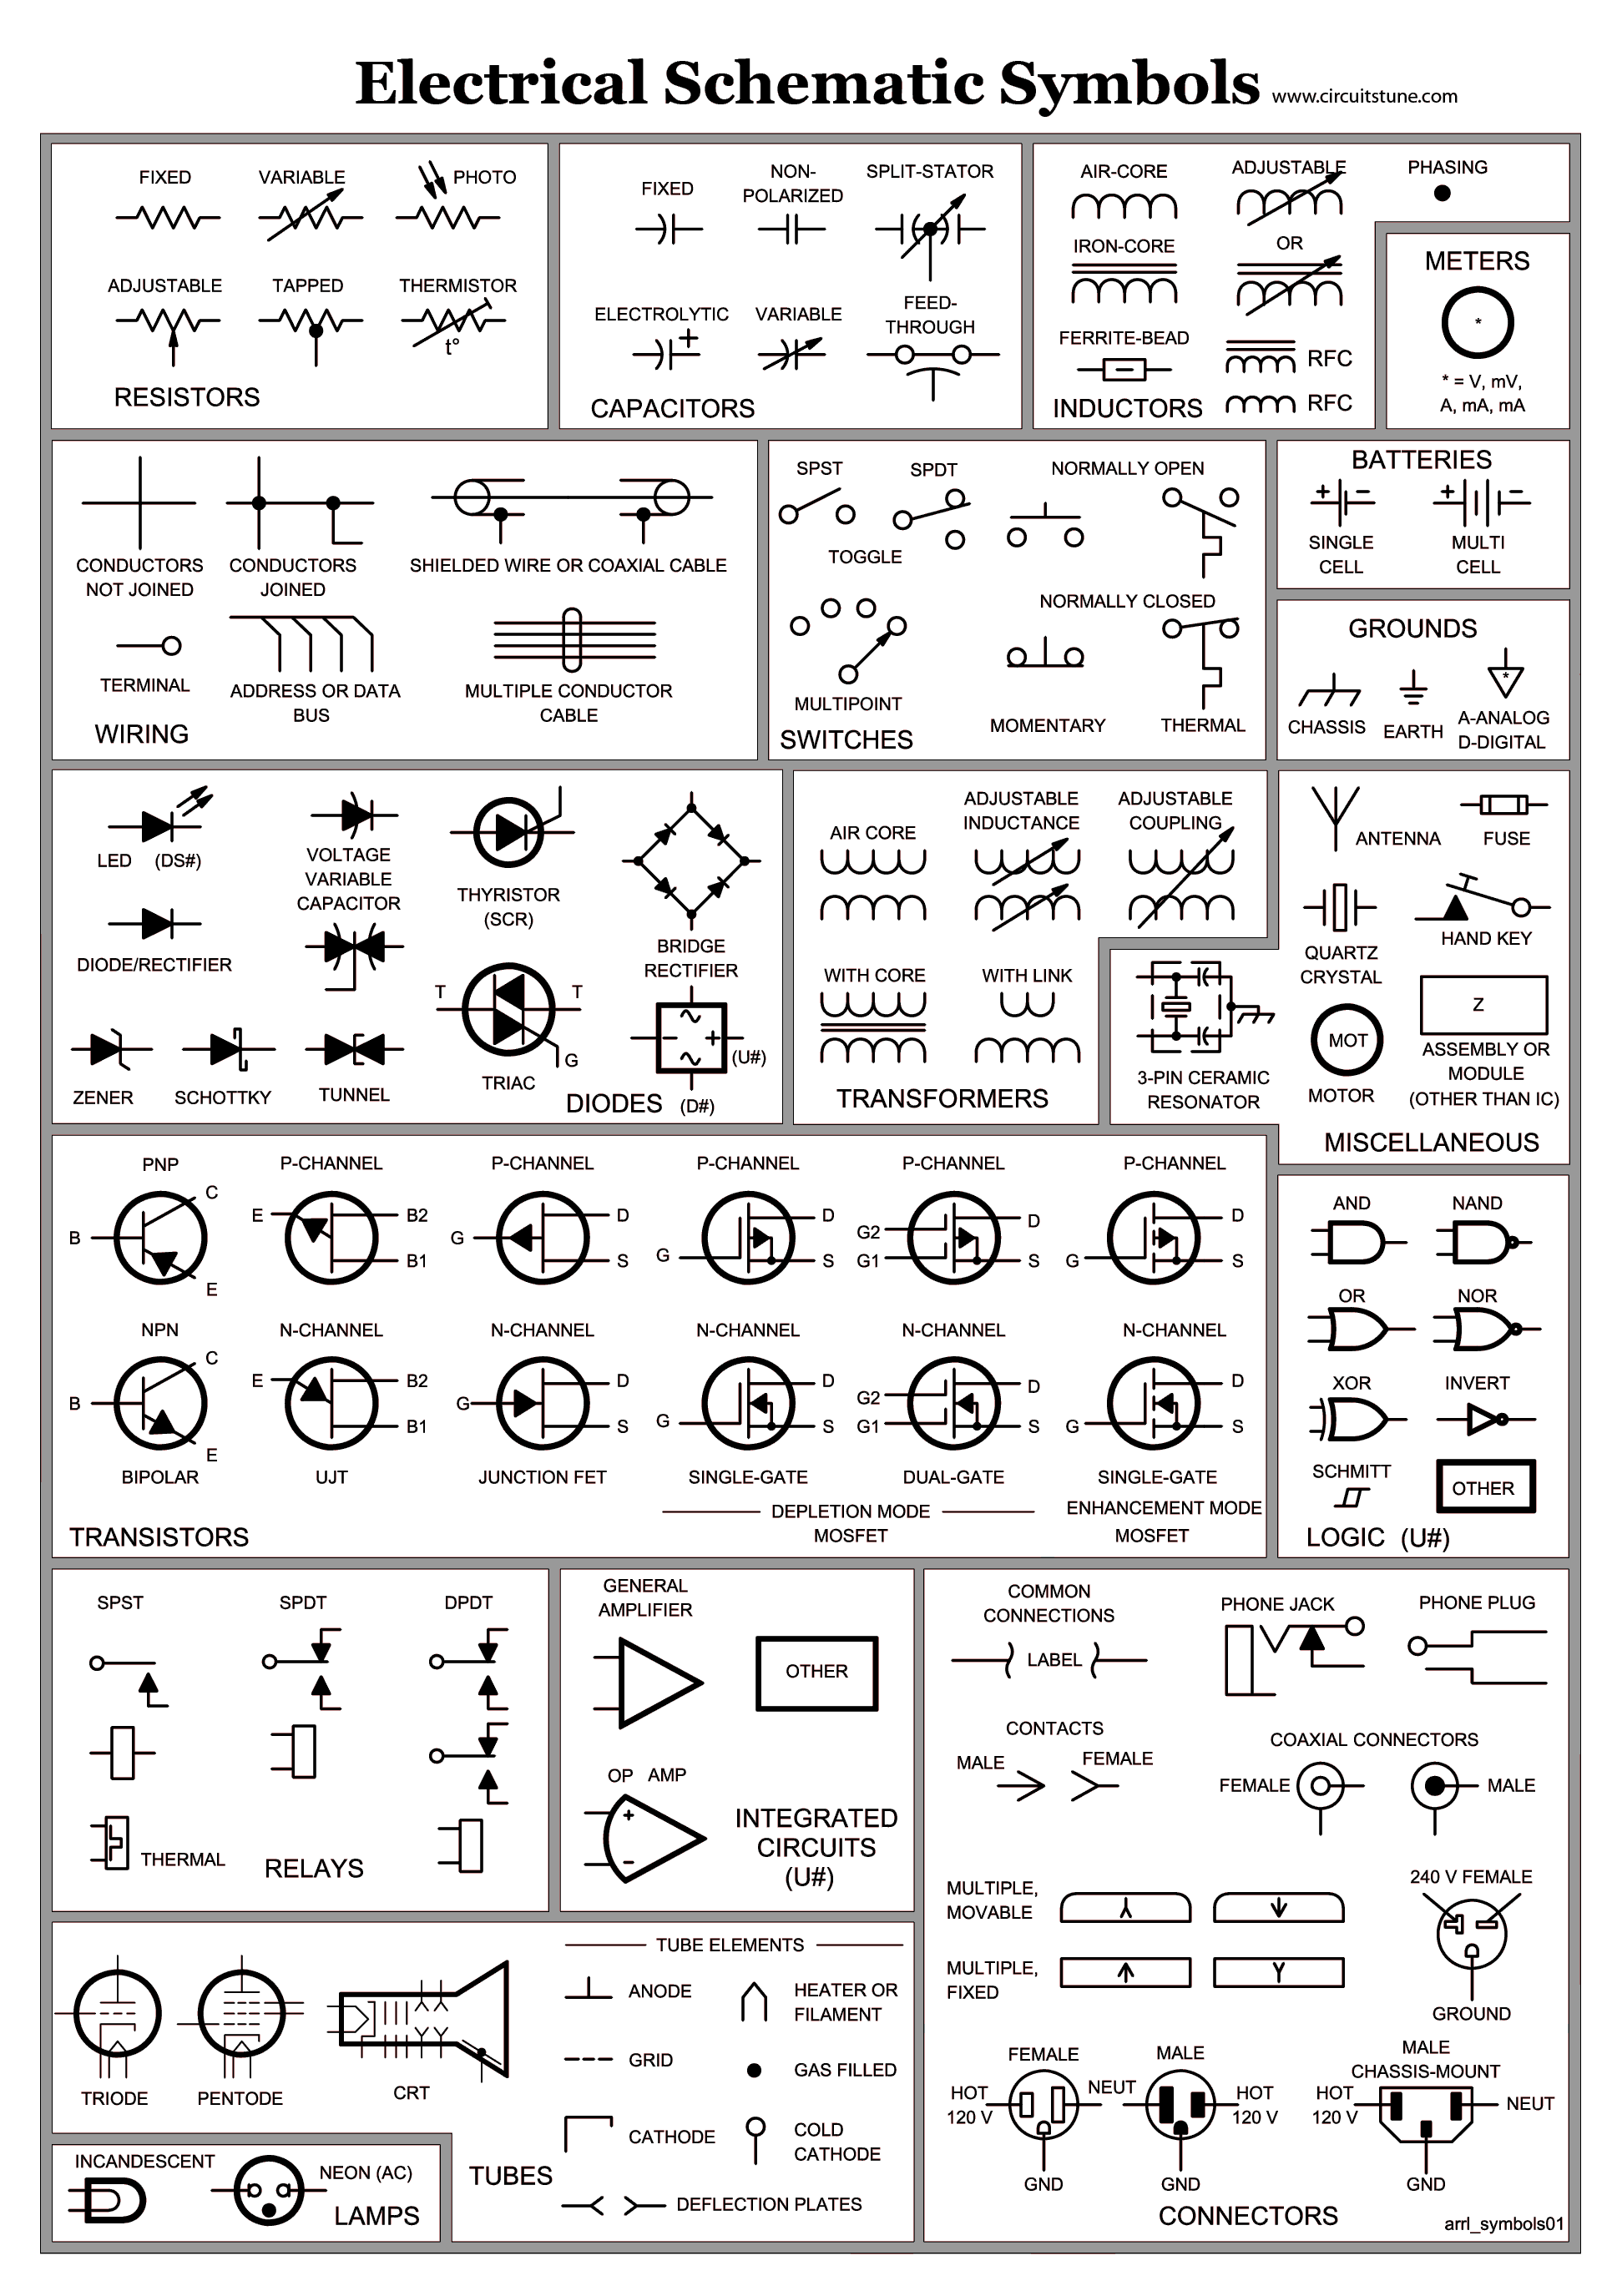 electrical schematic symbols wire diagram symbols automotive wiring rh pinterest com electrical wiring diagram symbols list automotive electrical wiring diagram symbols